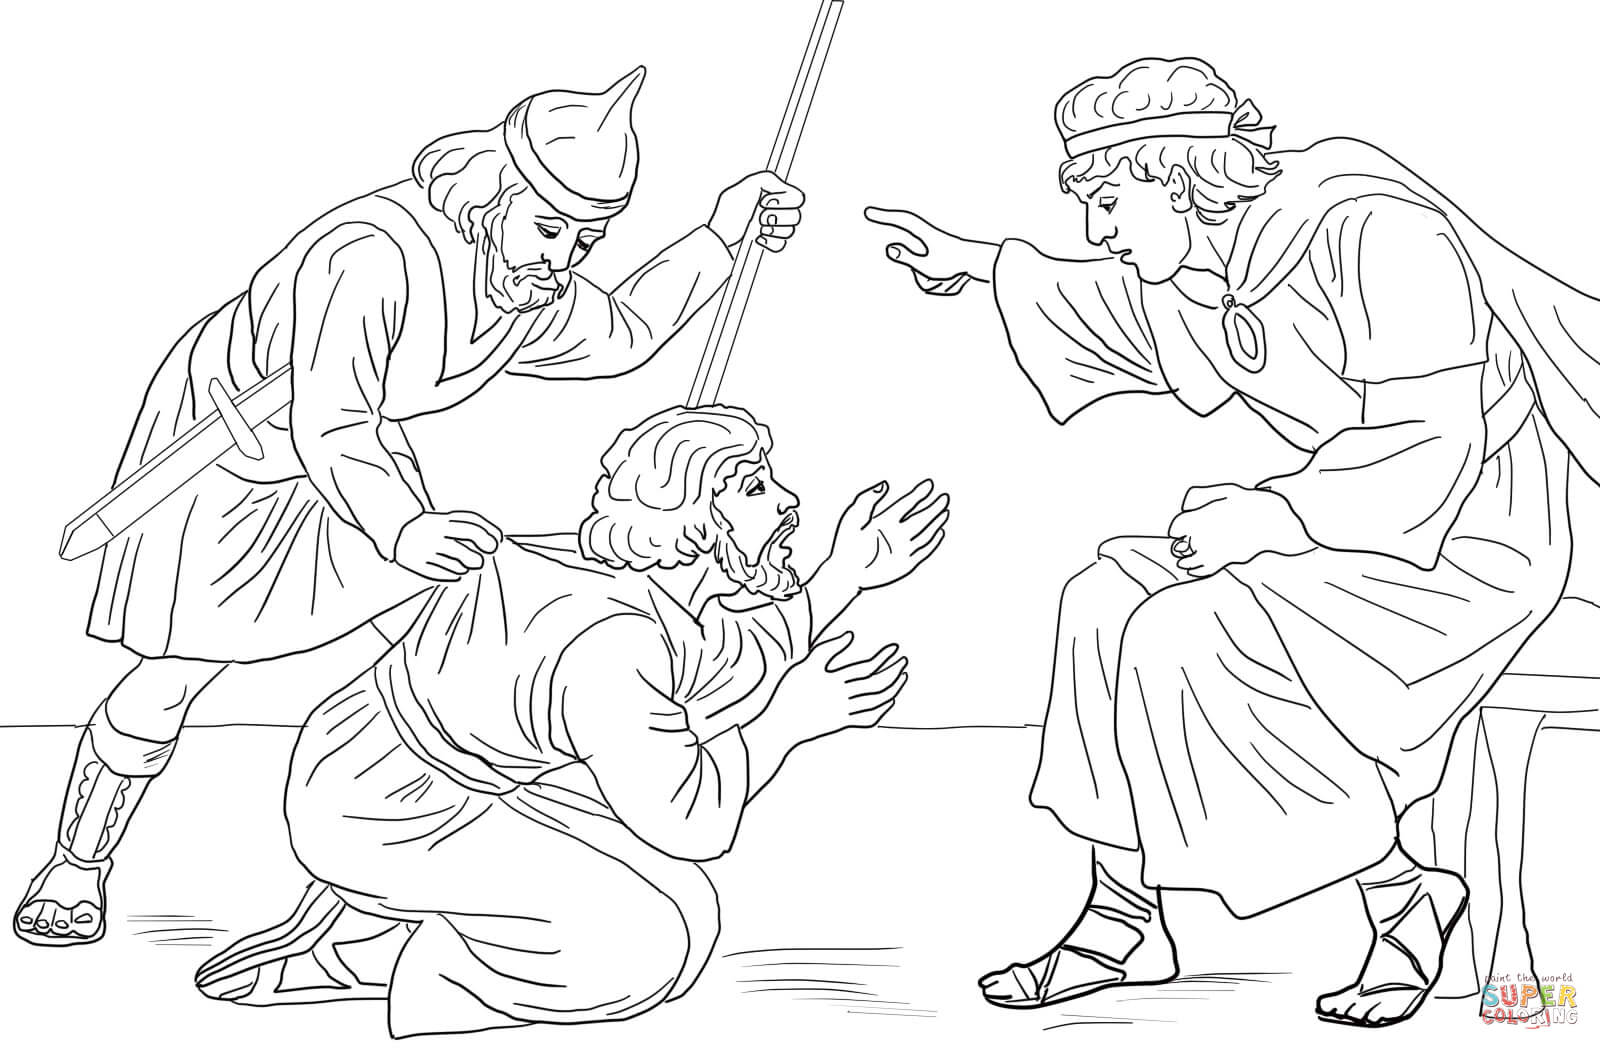 Unforgiving Servant Parable Coloring Page